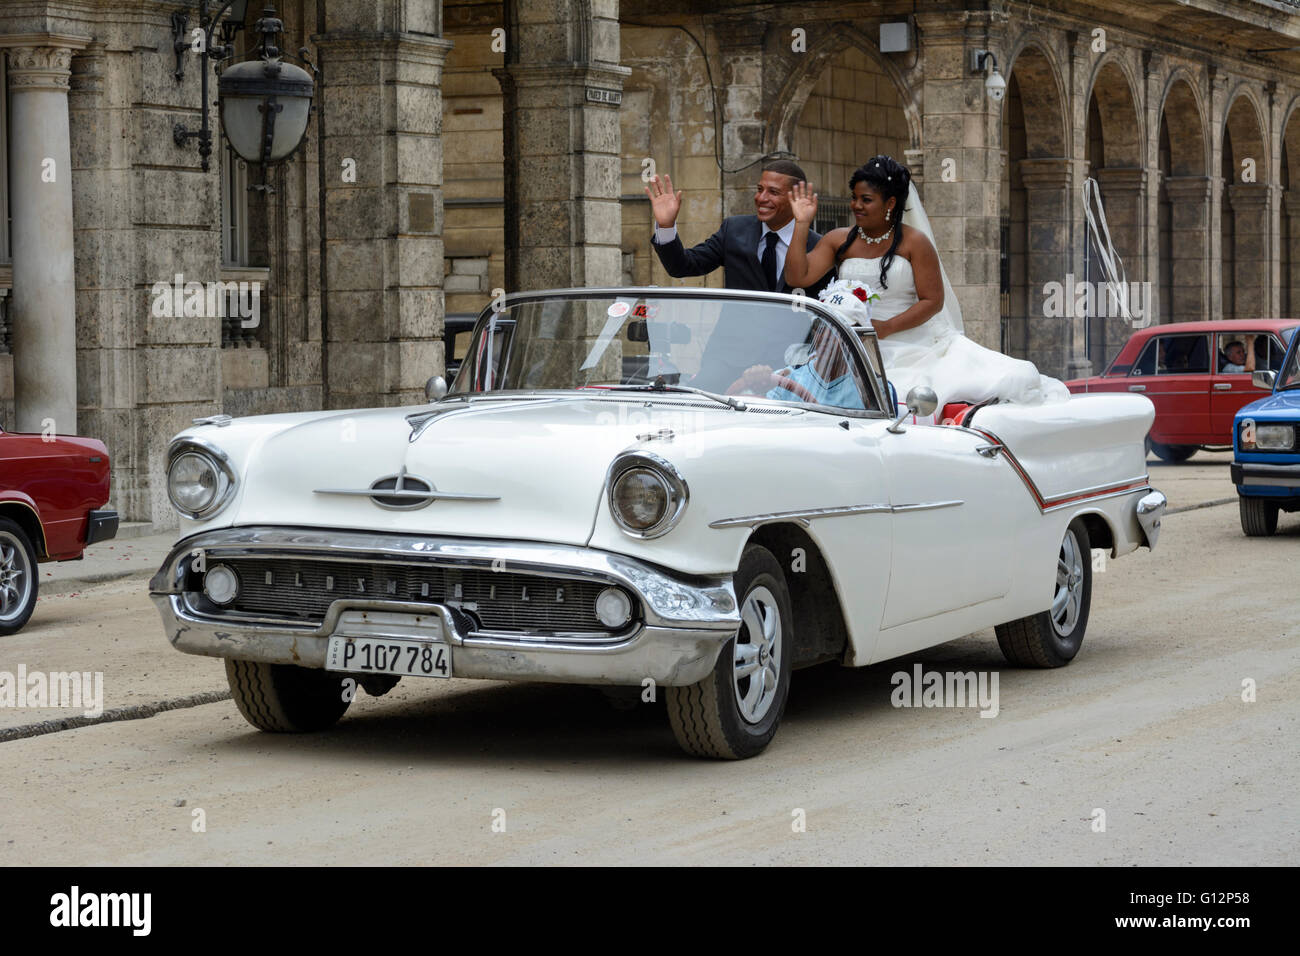 Newly weds celebrate their wedding with a tour of Havana in an ...